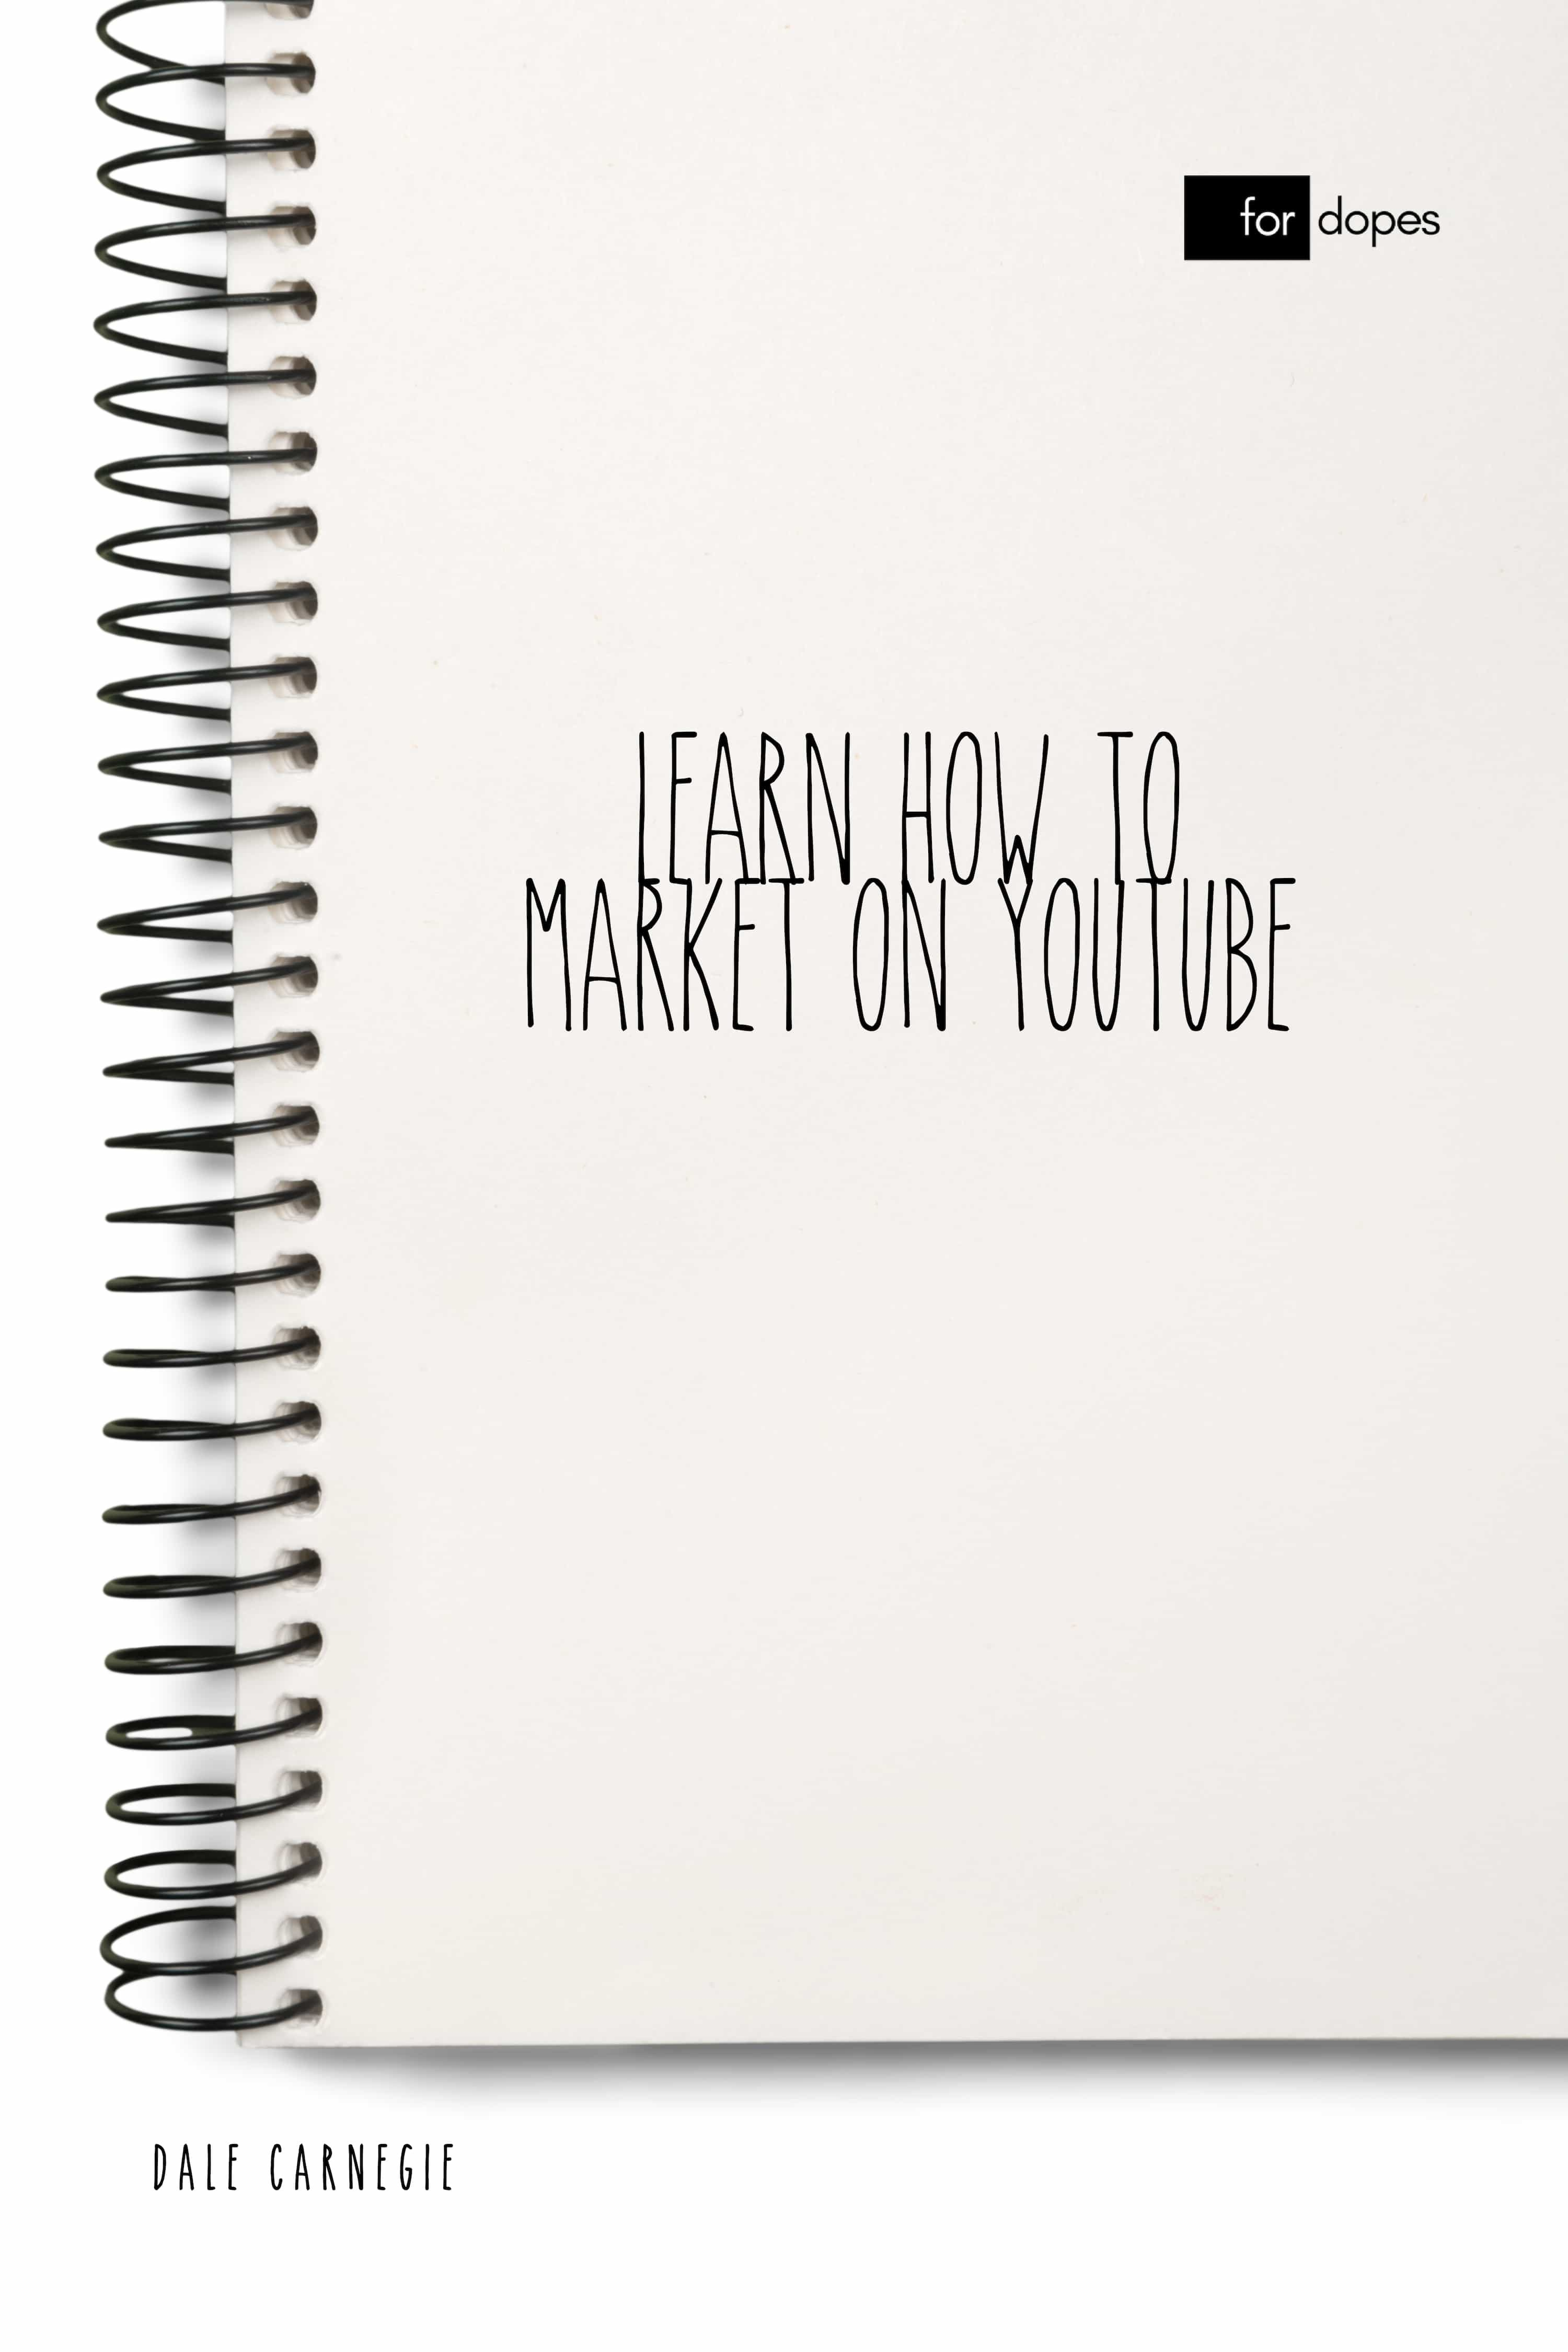 LEARN HOW TO MARKET ON YOUTUBE